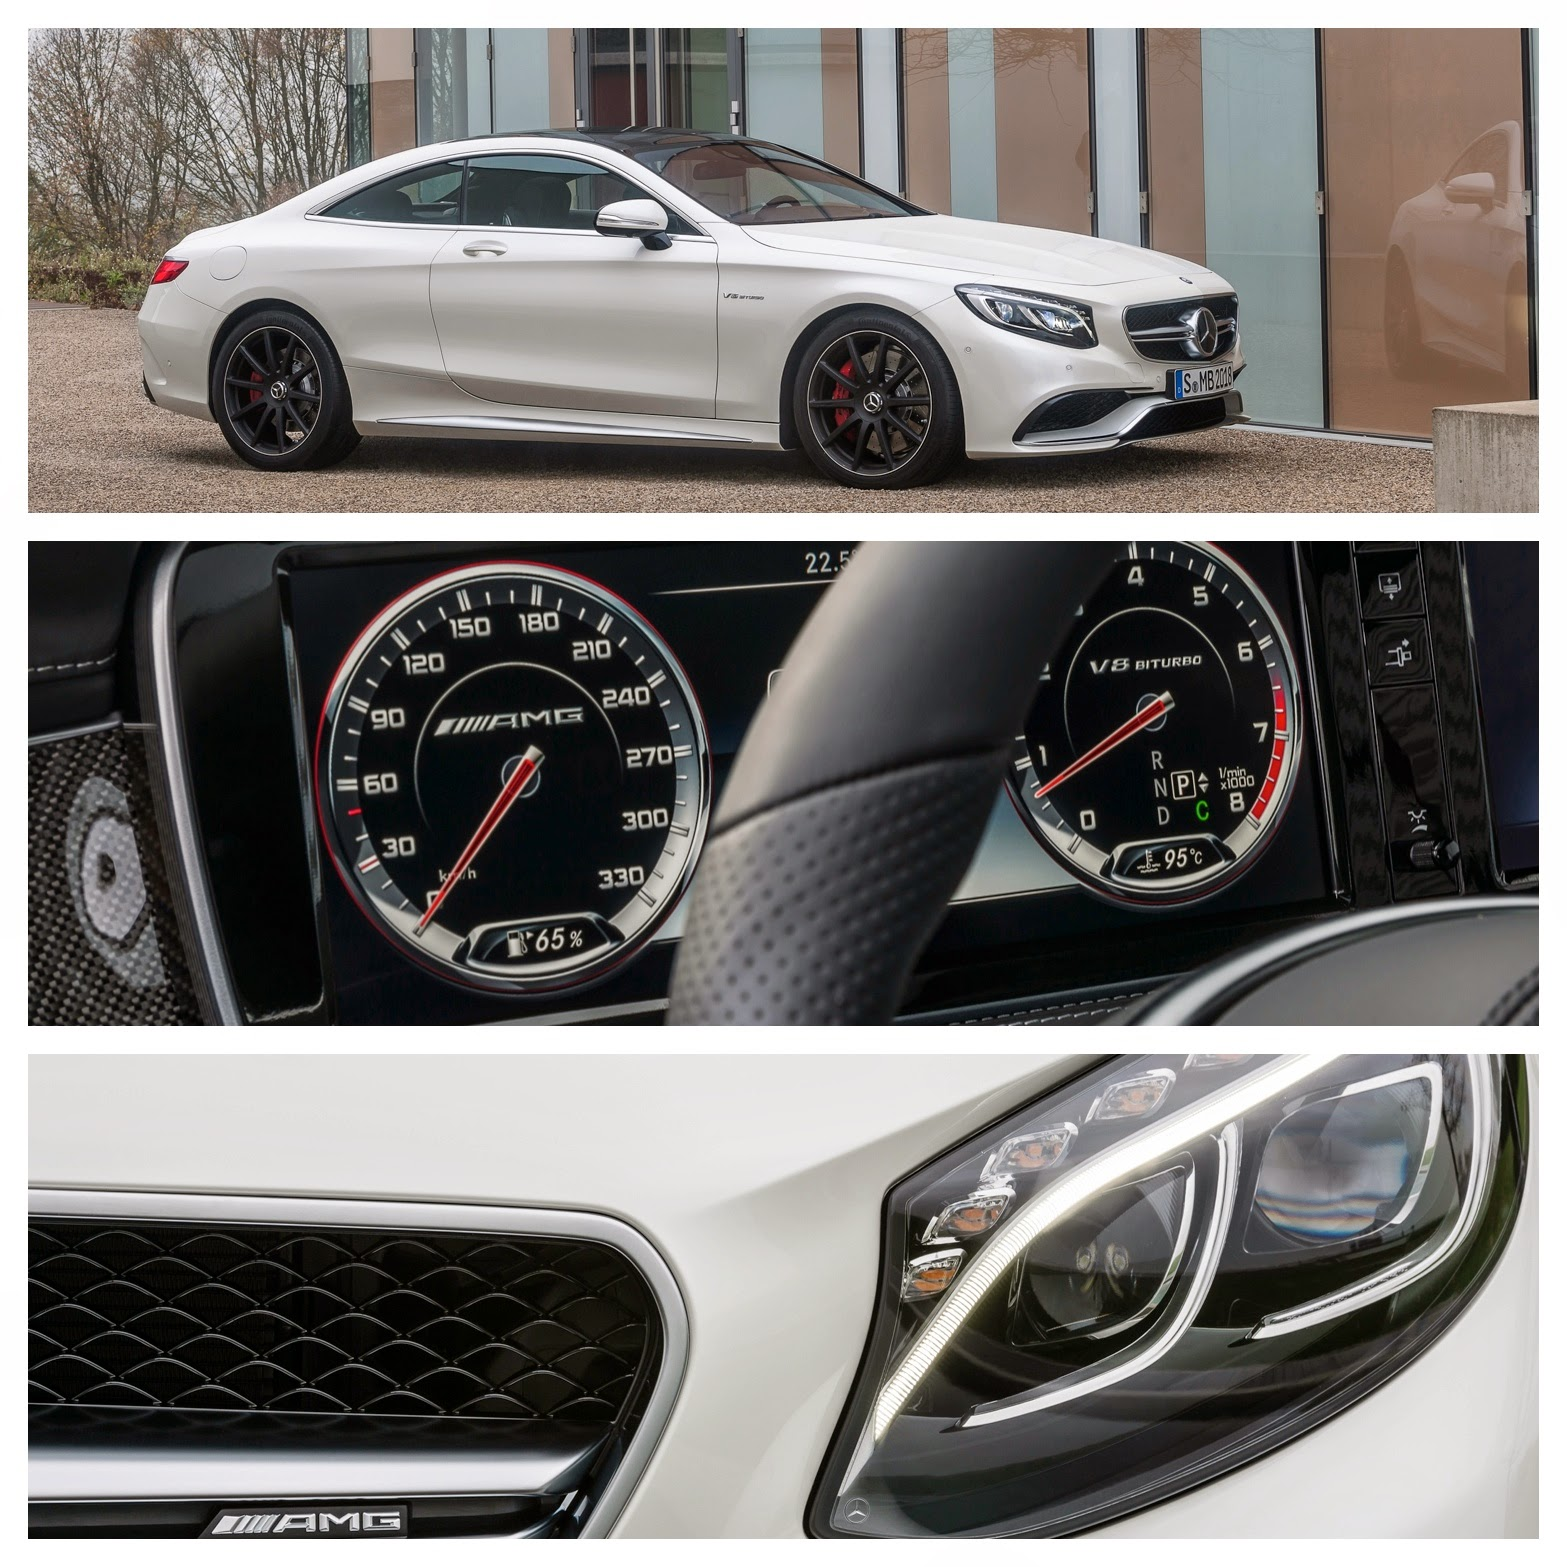 The New Mercedes S63 Coupe 4MATIC AMG